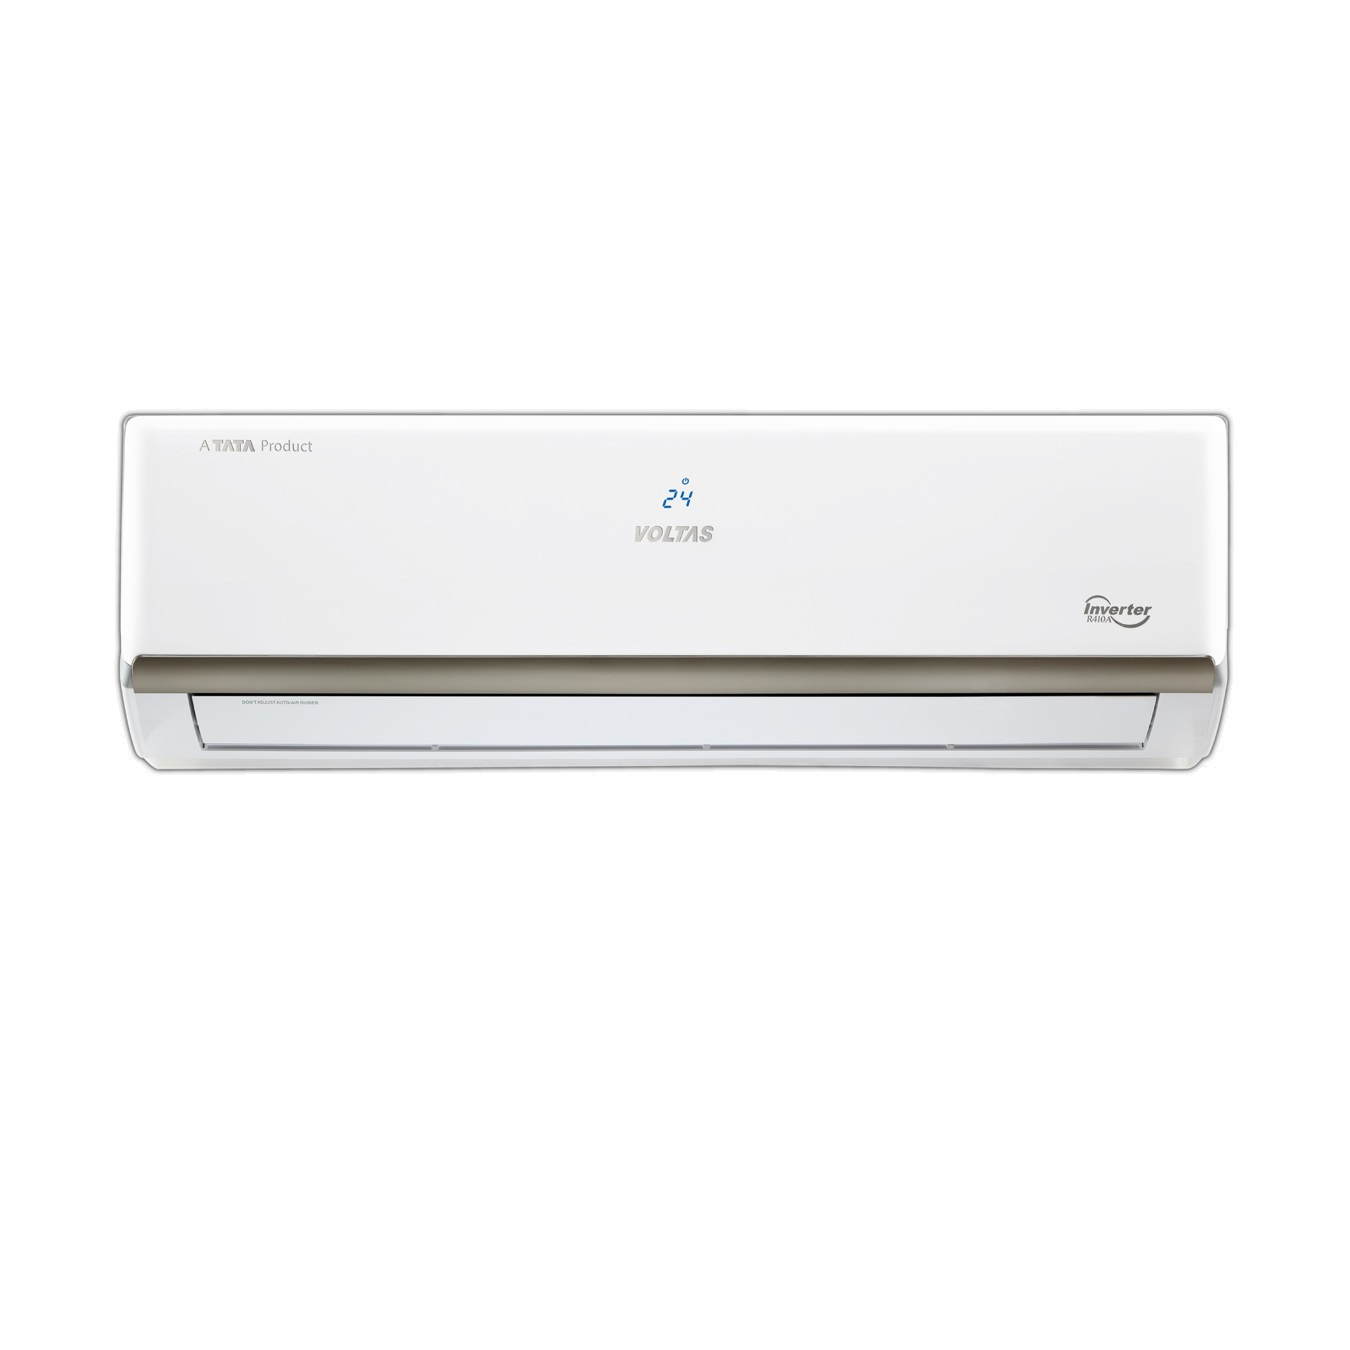 Voltas 183 Dya 1 5 Ton Window AC Price, Specification